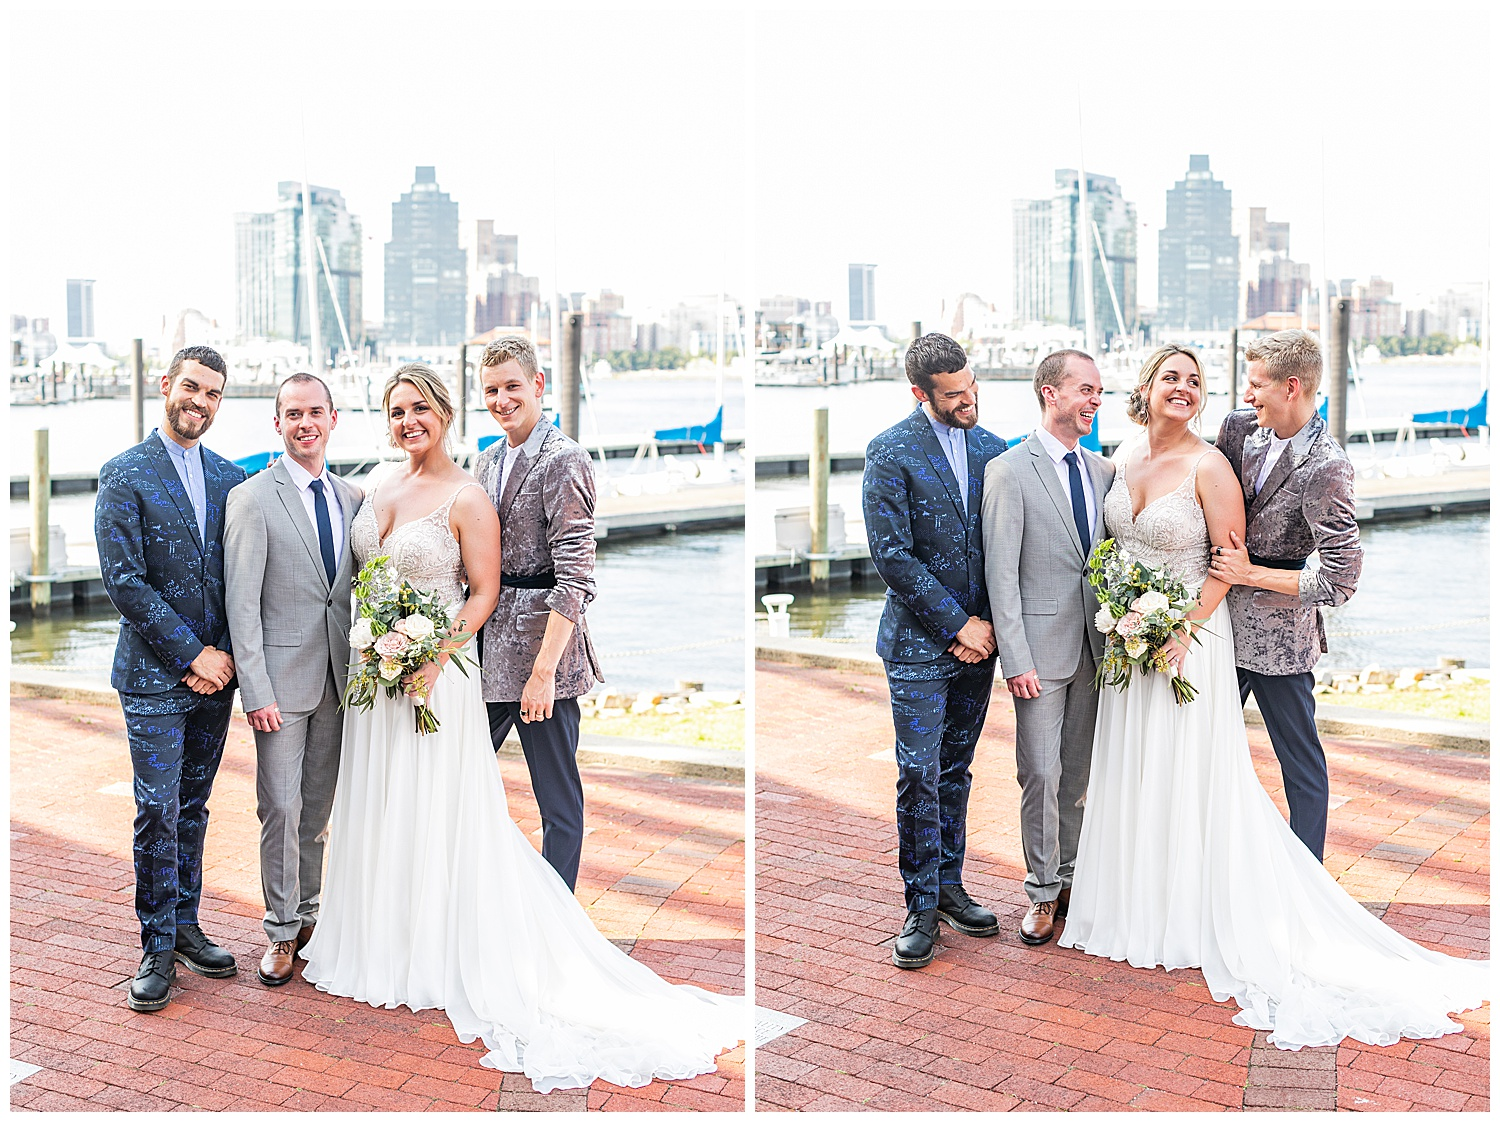 Jenn Brent Baltimore Museum of Industry Wedding Living Radiant Photography photos_0037.jpg